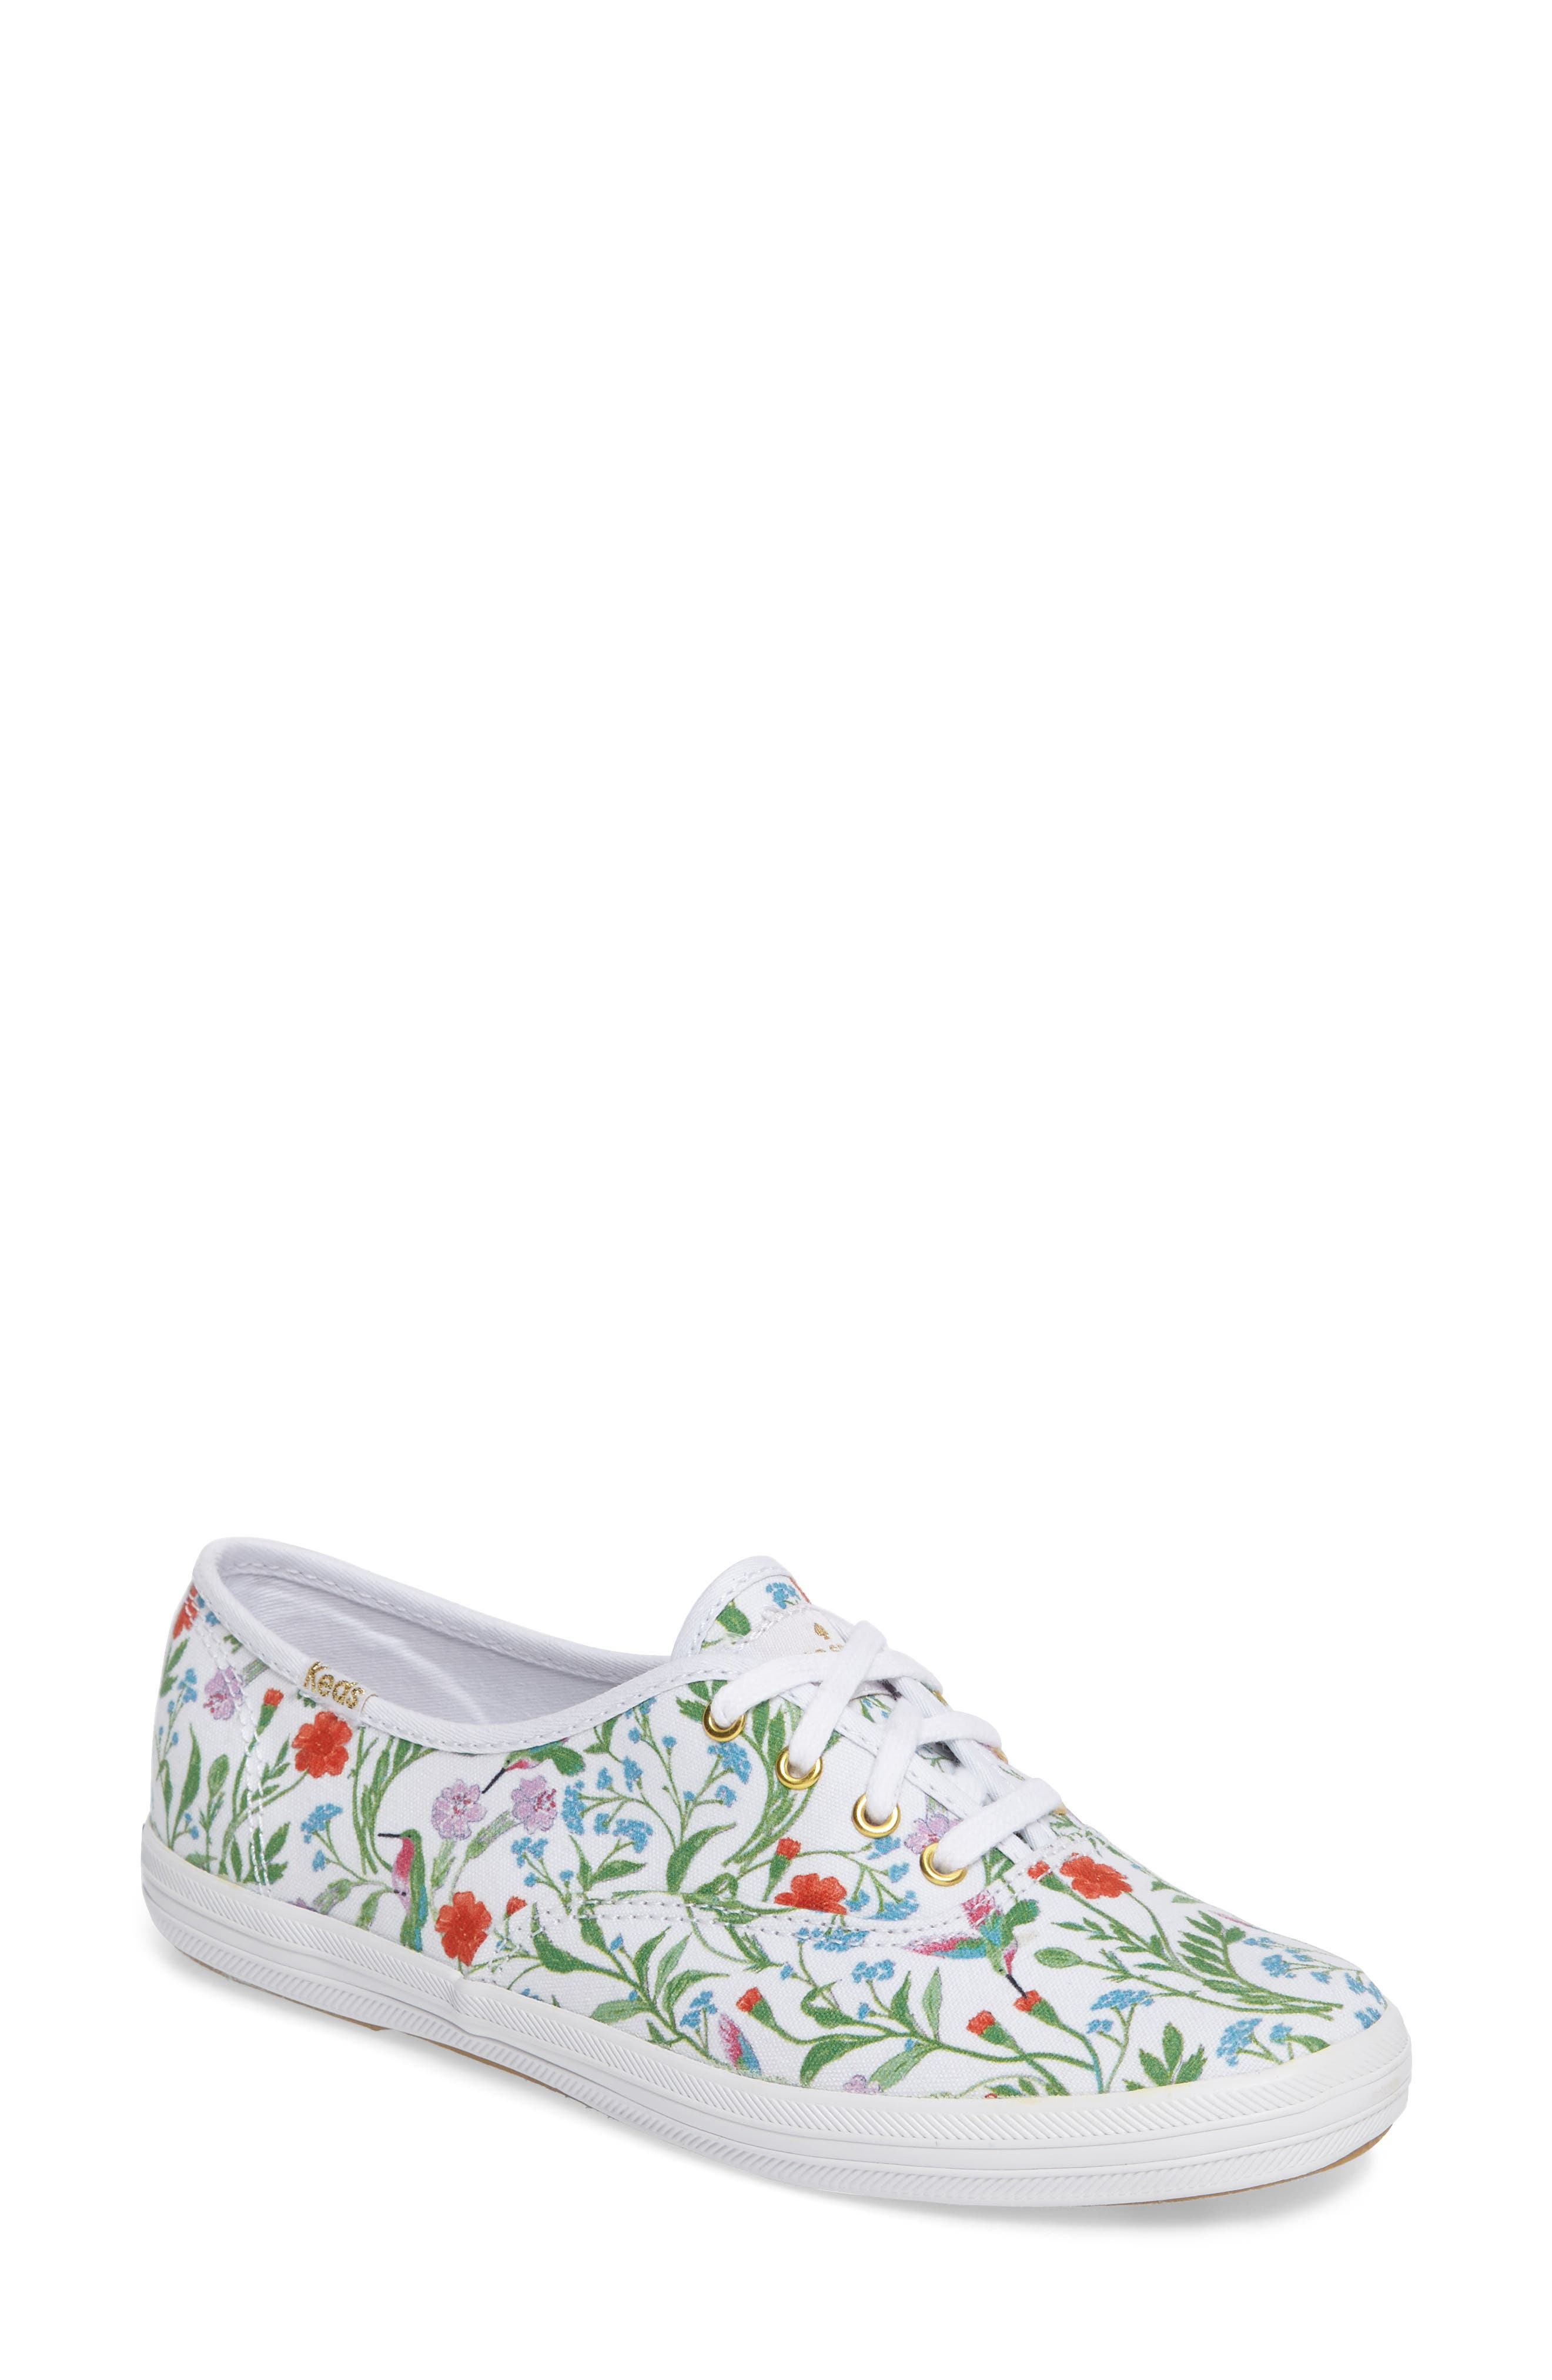 Keds<sup>®</sup> x kate spade new york champion sneaker,                             Main thumbnail 3, color,